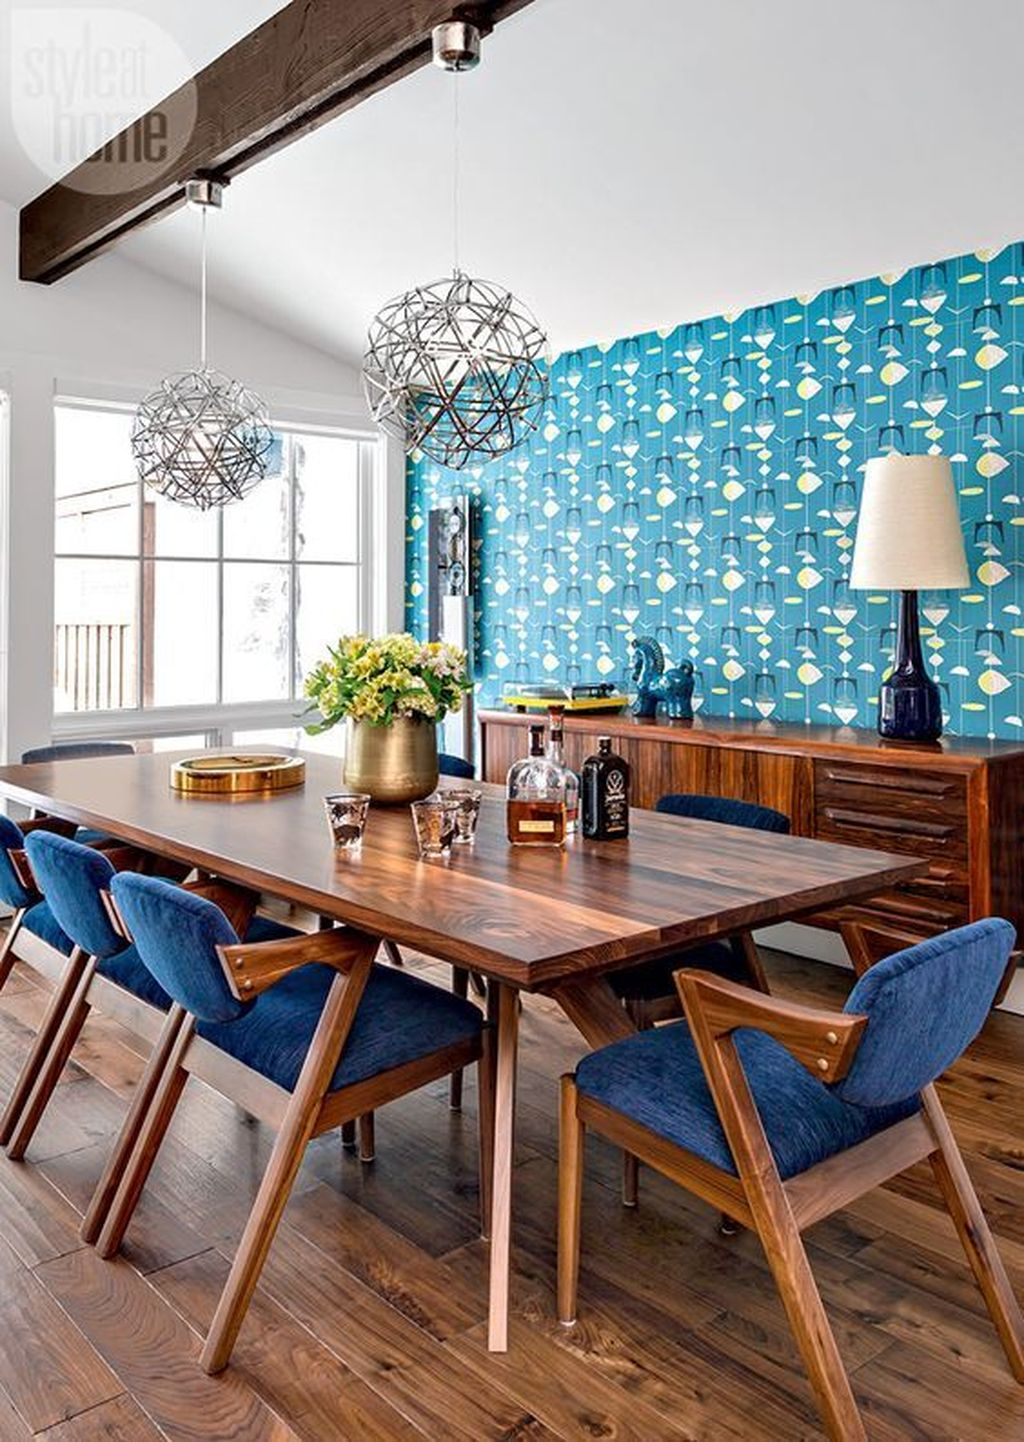 Stunning Dining Room Table Design With Modern Style 12